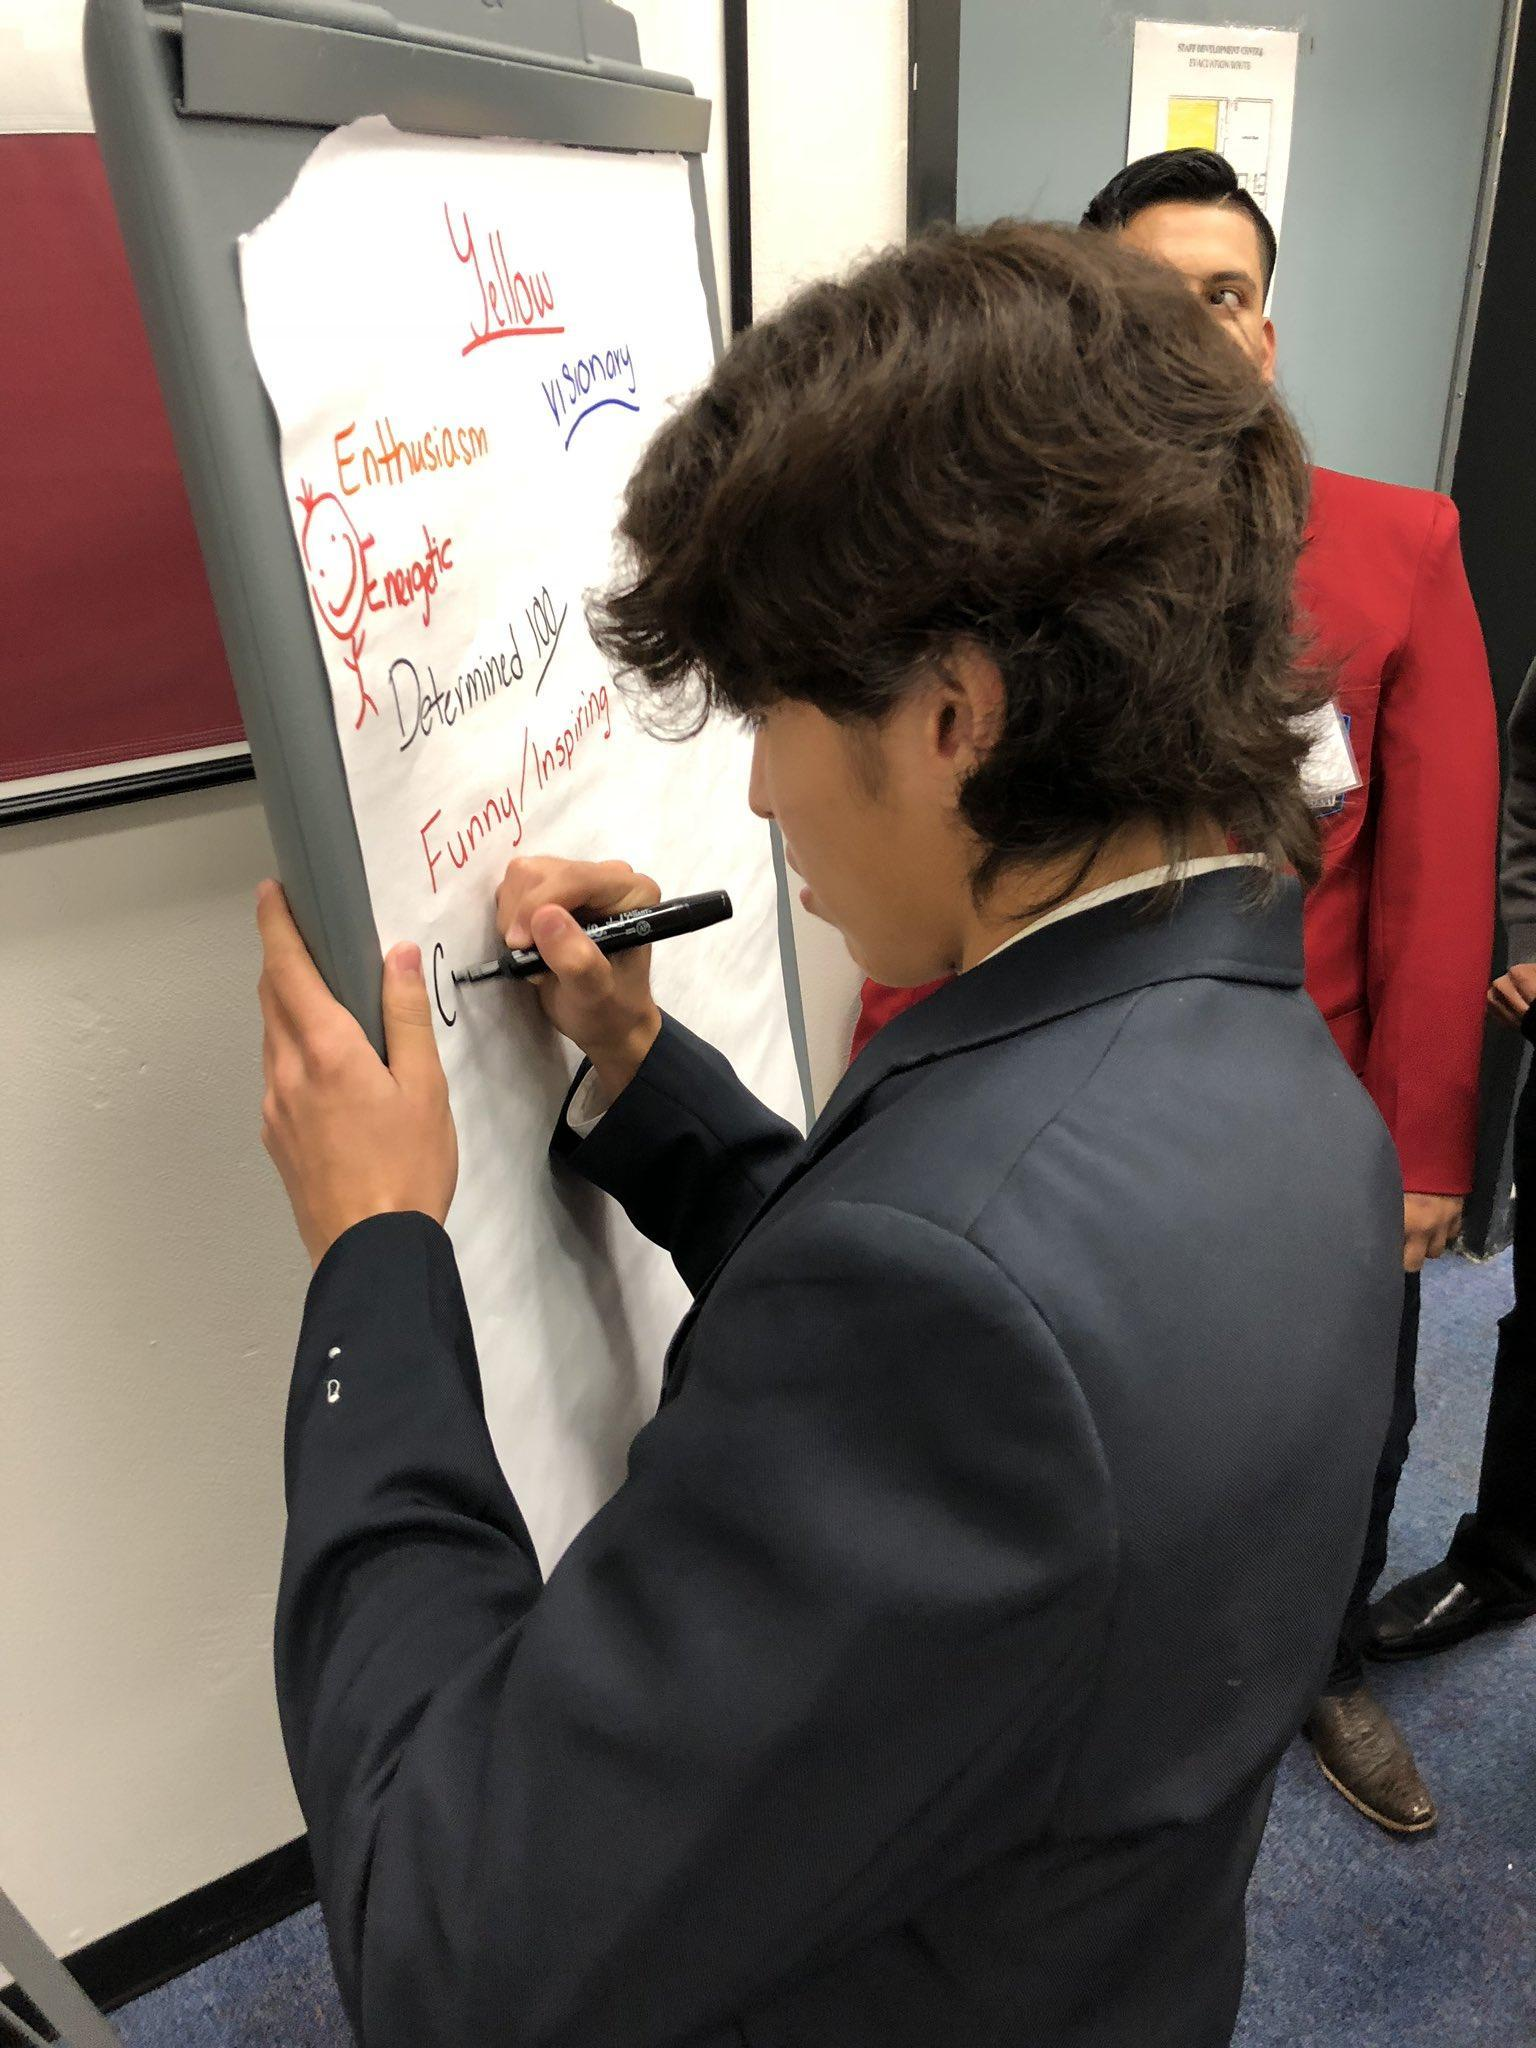 student in suit writing on paper